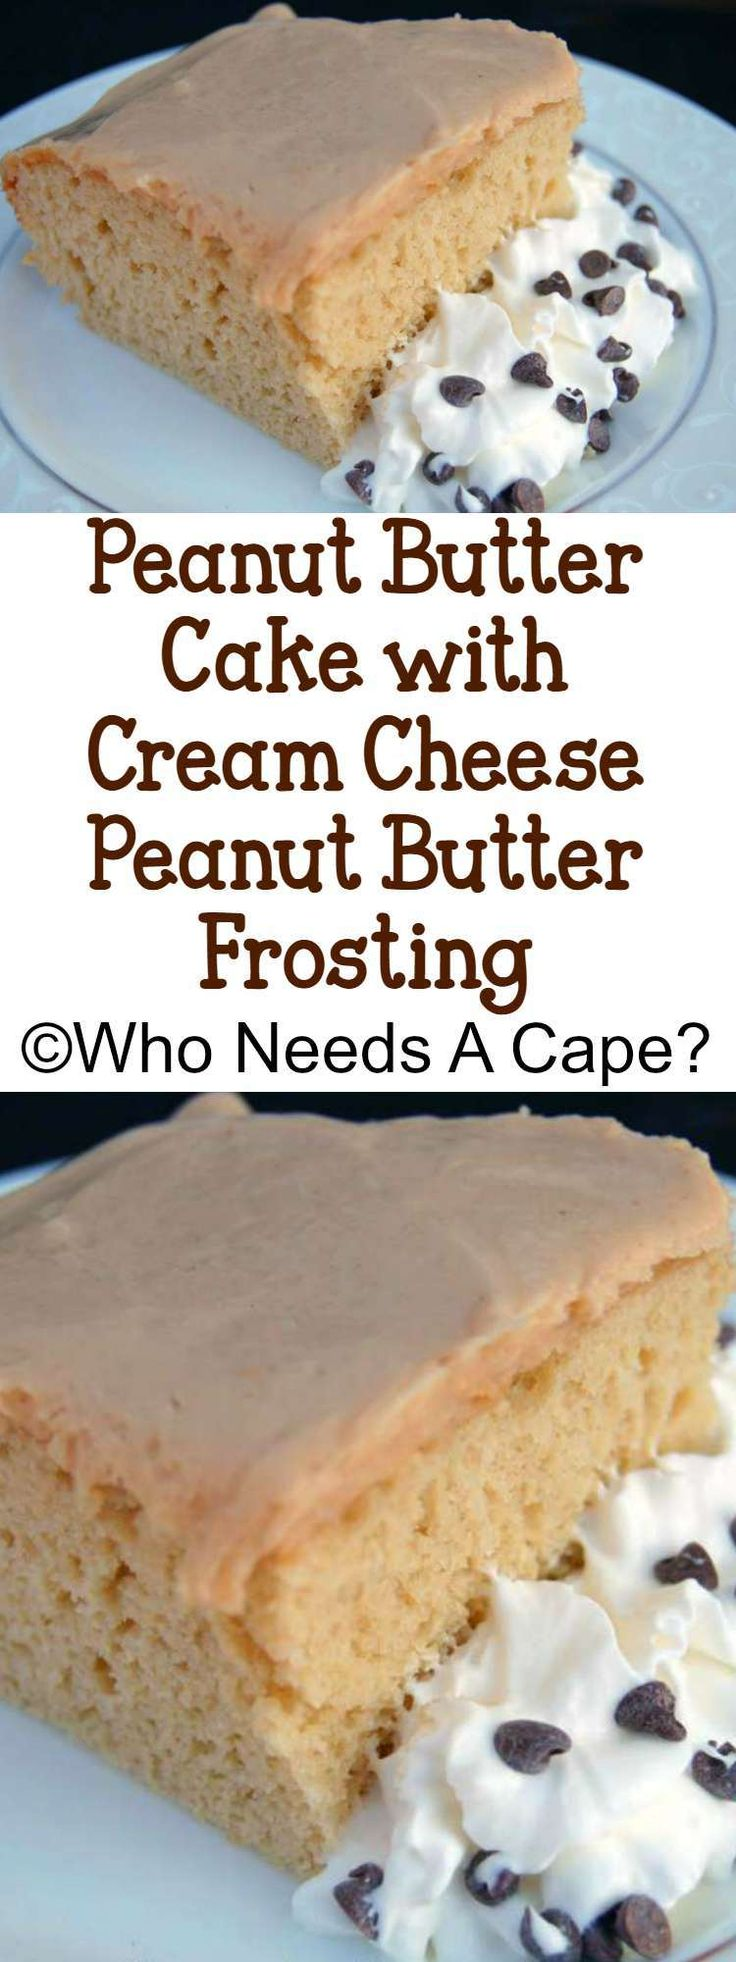 This Peanut Butter Cake with Cream Cheese Peanut Butter Frosting will soon be your new family favorite. Easy to make and oh so yummy!